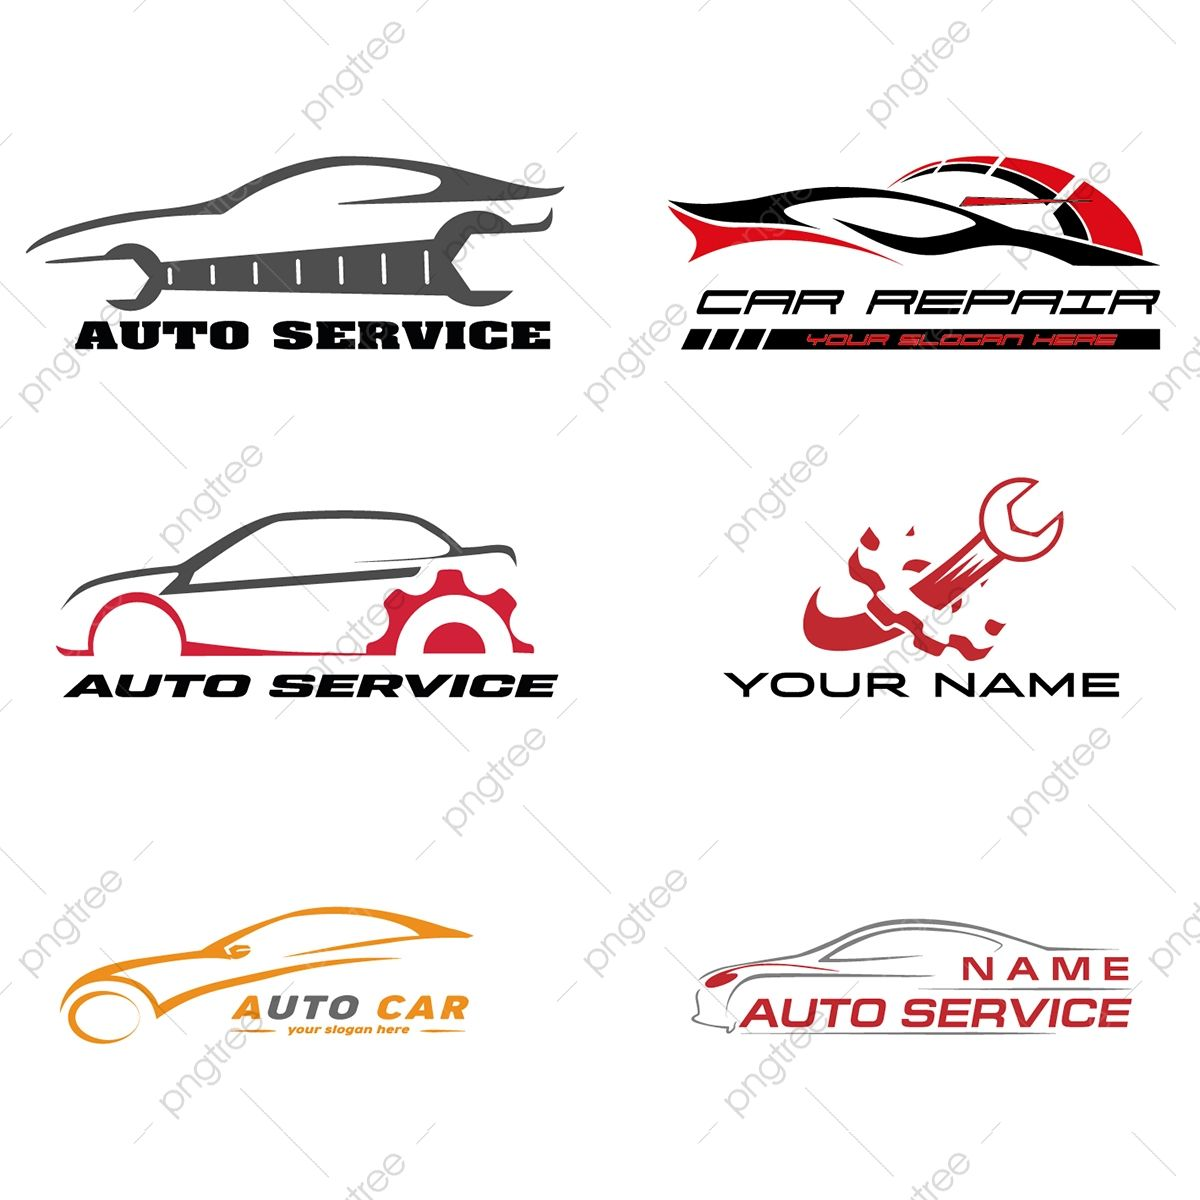 Car Repair Logo Auto Service Car Png And Vector With Transparent Background For Free Download Auto Repair Auto Shop Logo Automotive Logo